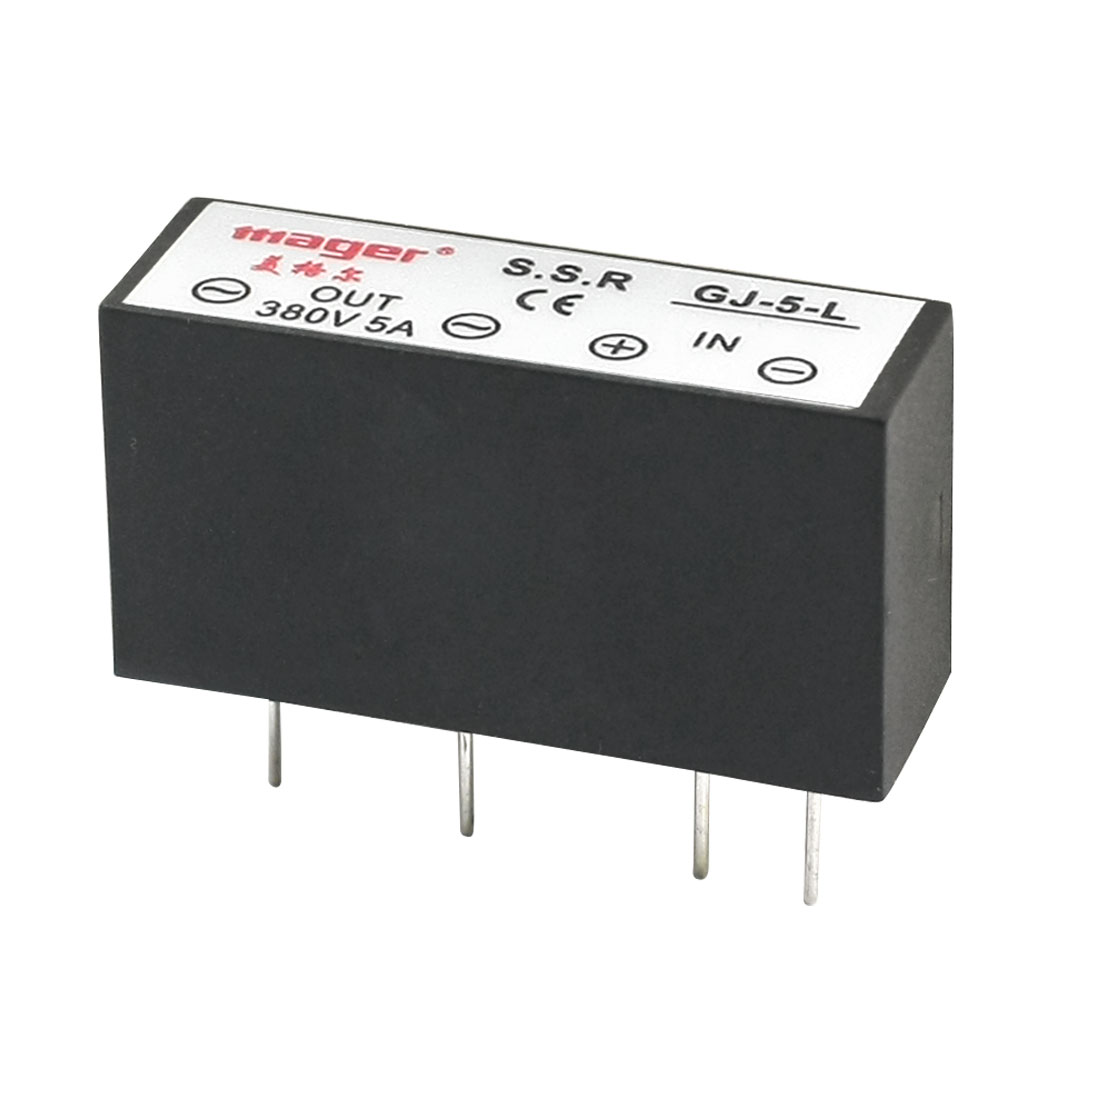 GJ-5-L DC3-32V Input AC380V 5A Output 4-Pin PCB Through Hole Mounting Rectangle One Phase PCB SSR Solid State Relay